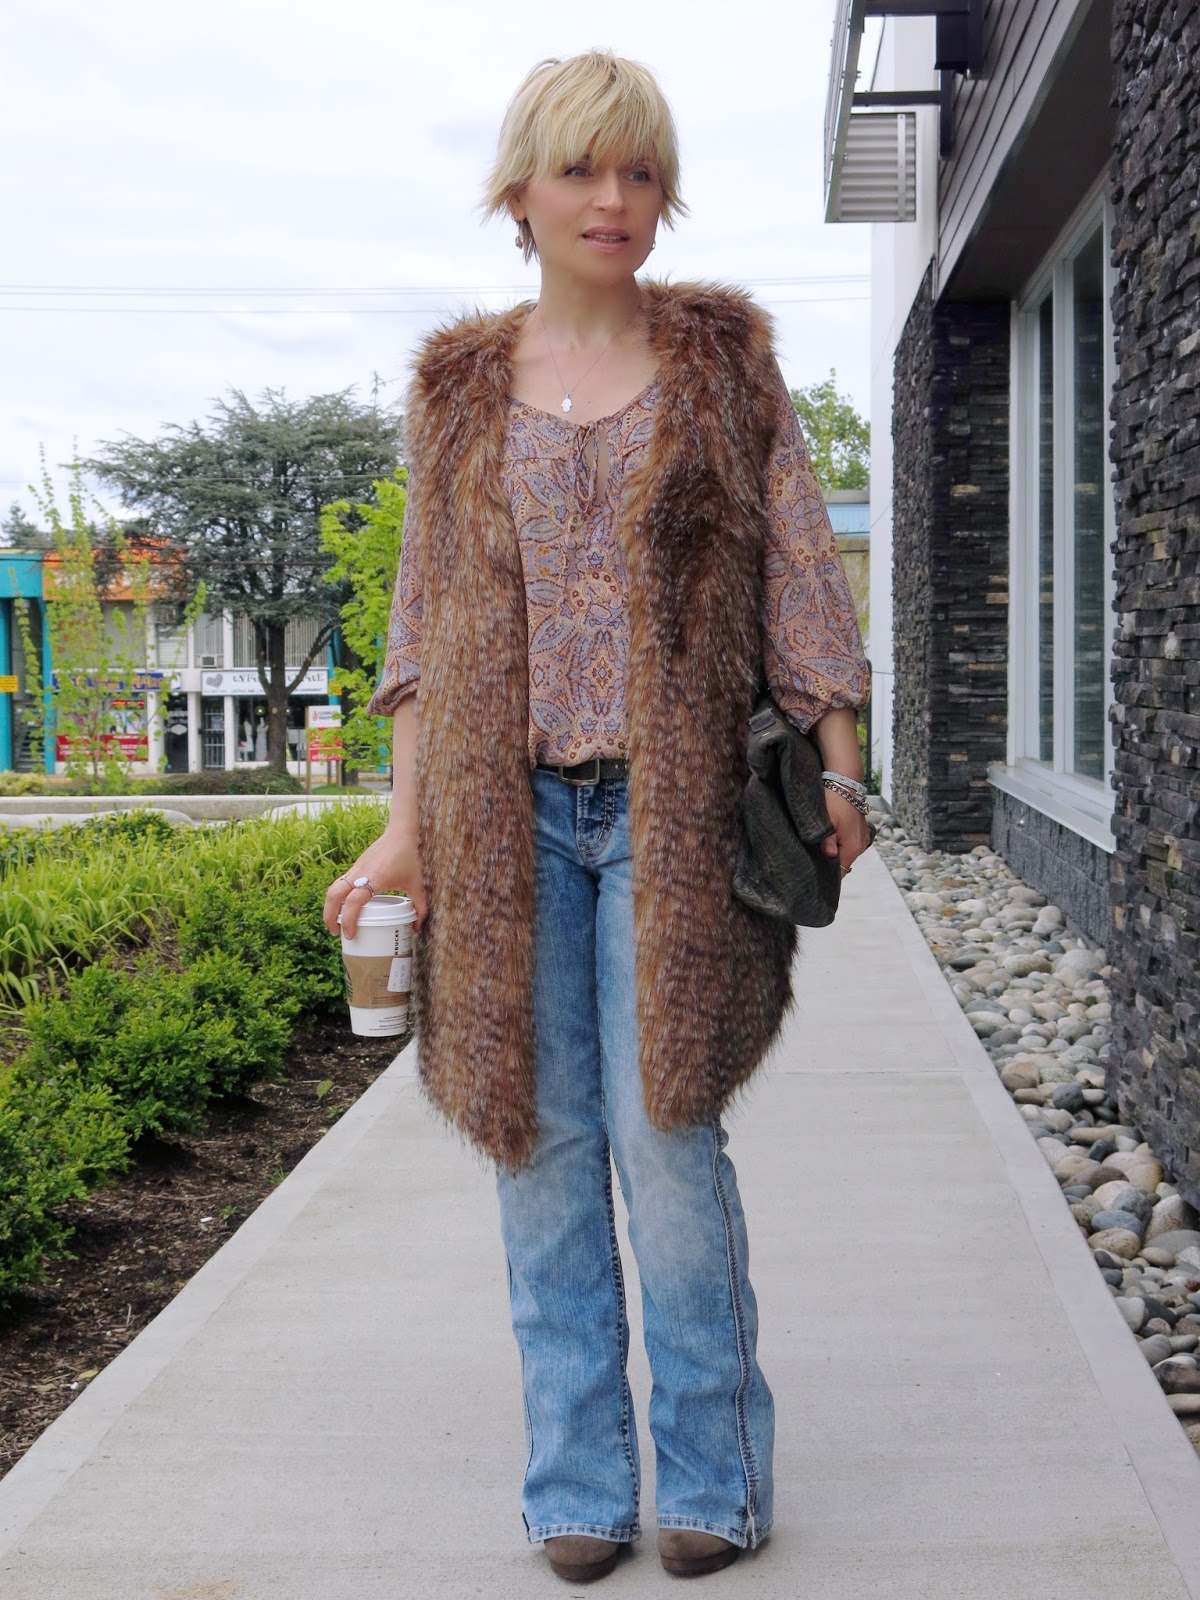 styling a paisley blouse with boot-cut jeans and a furry vest